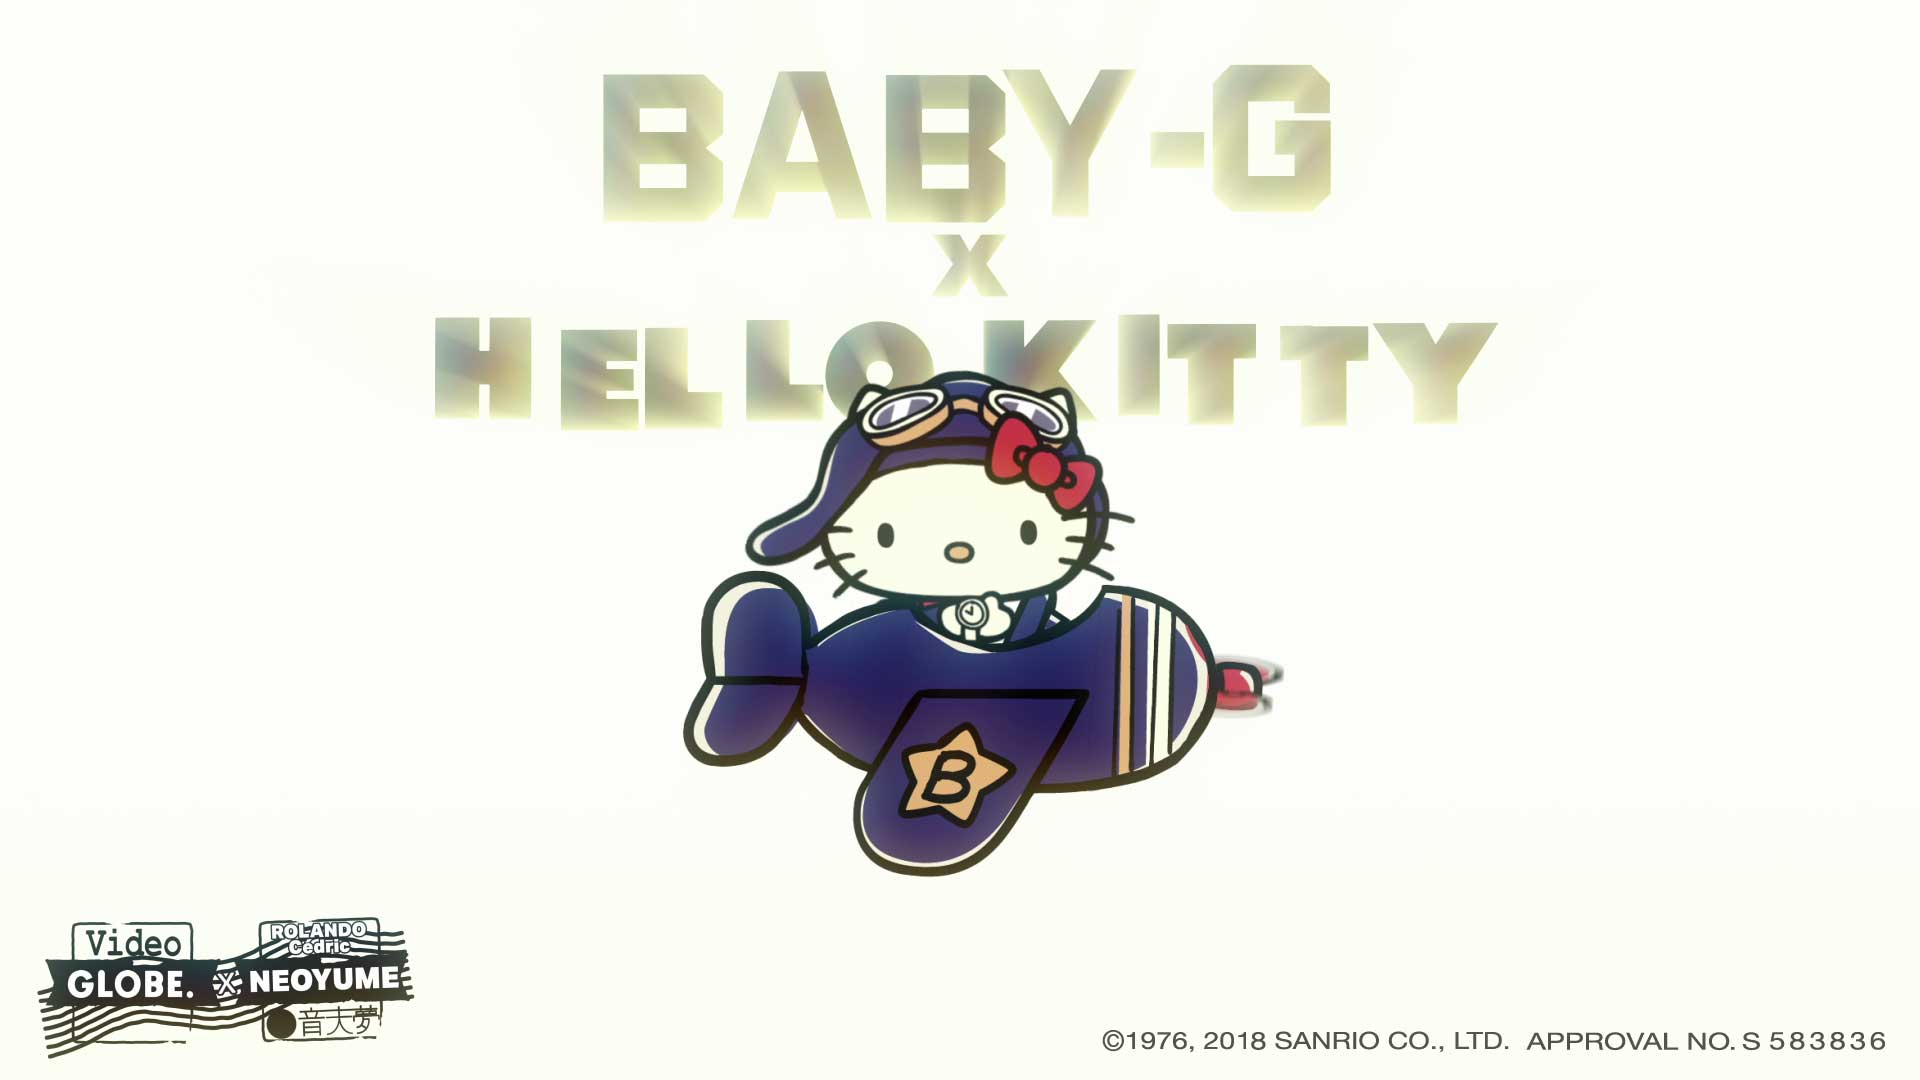 hellokitty casio globe screenshot03 1